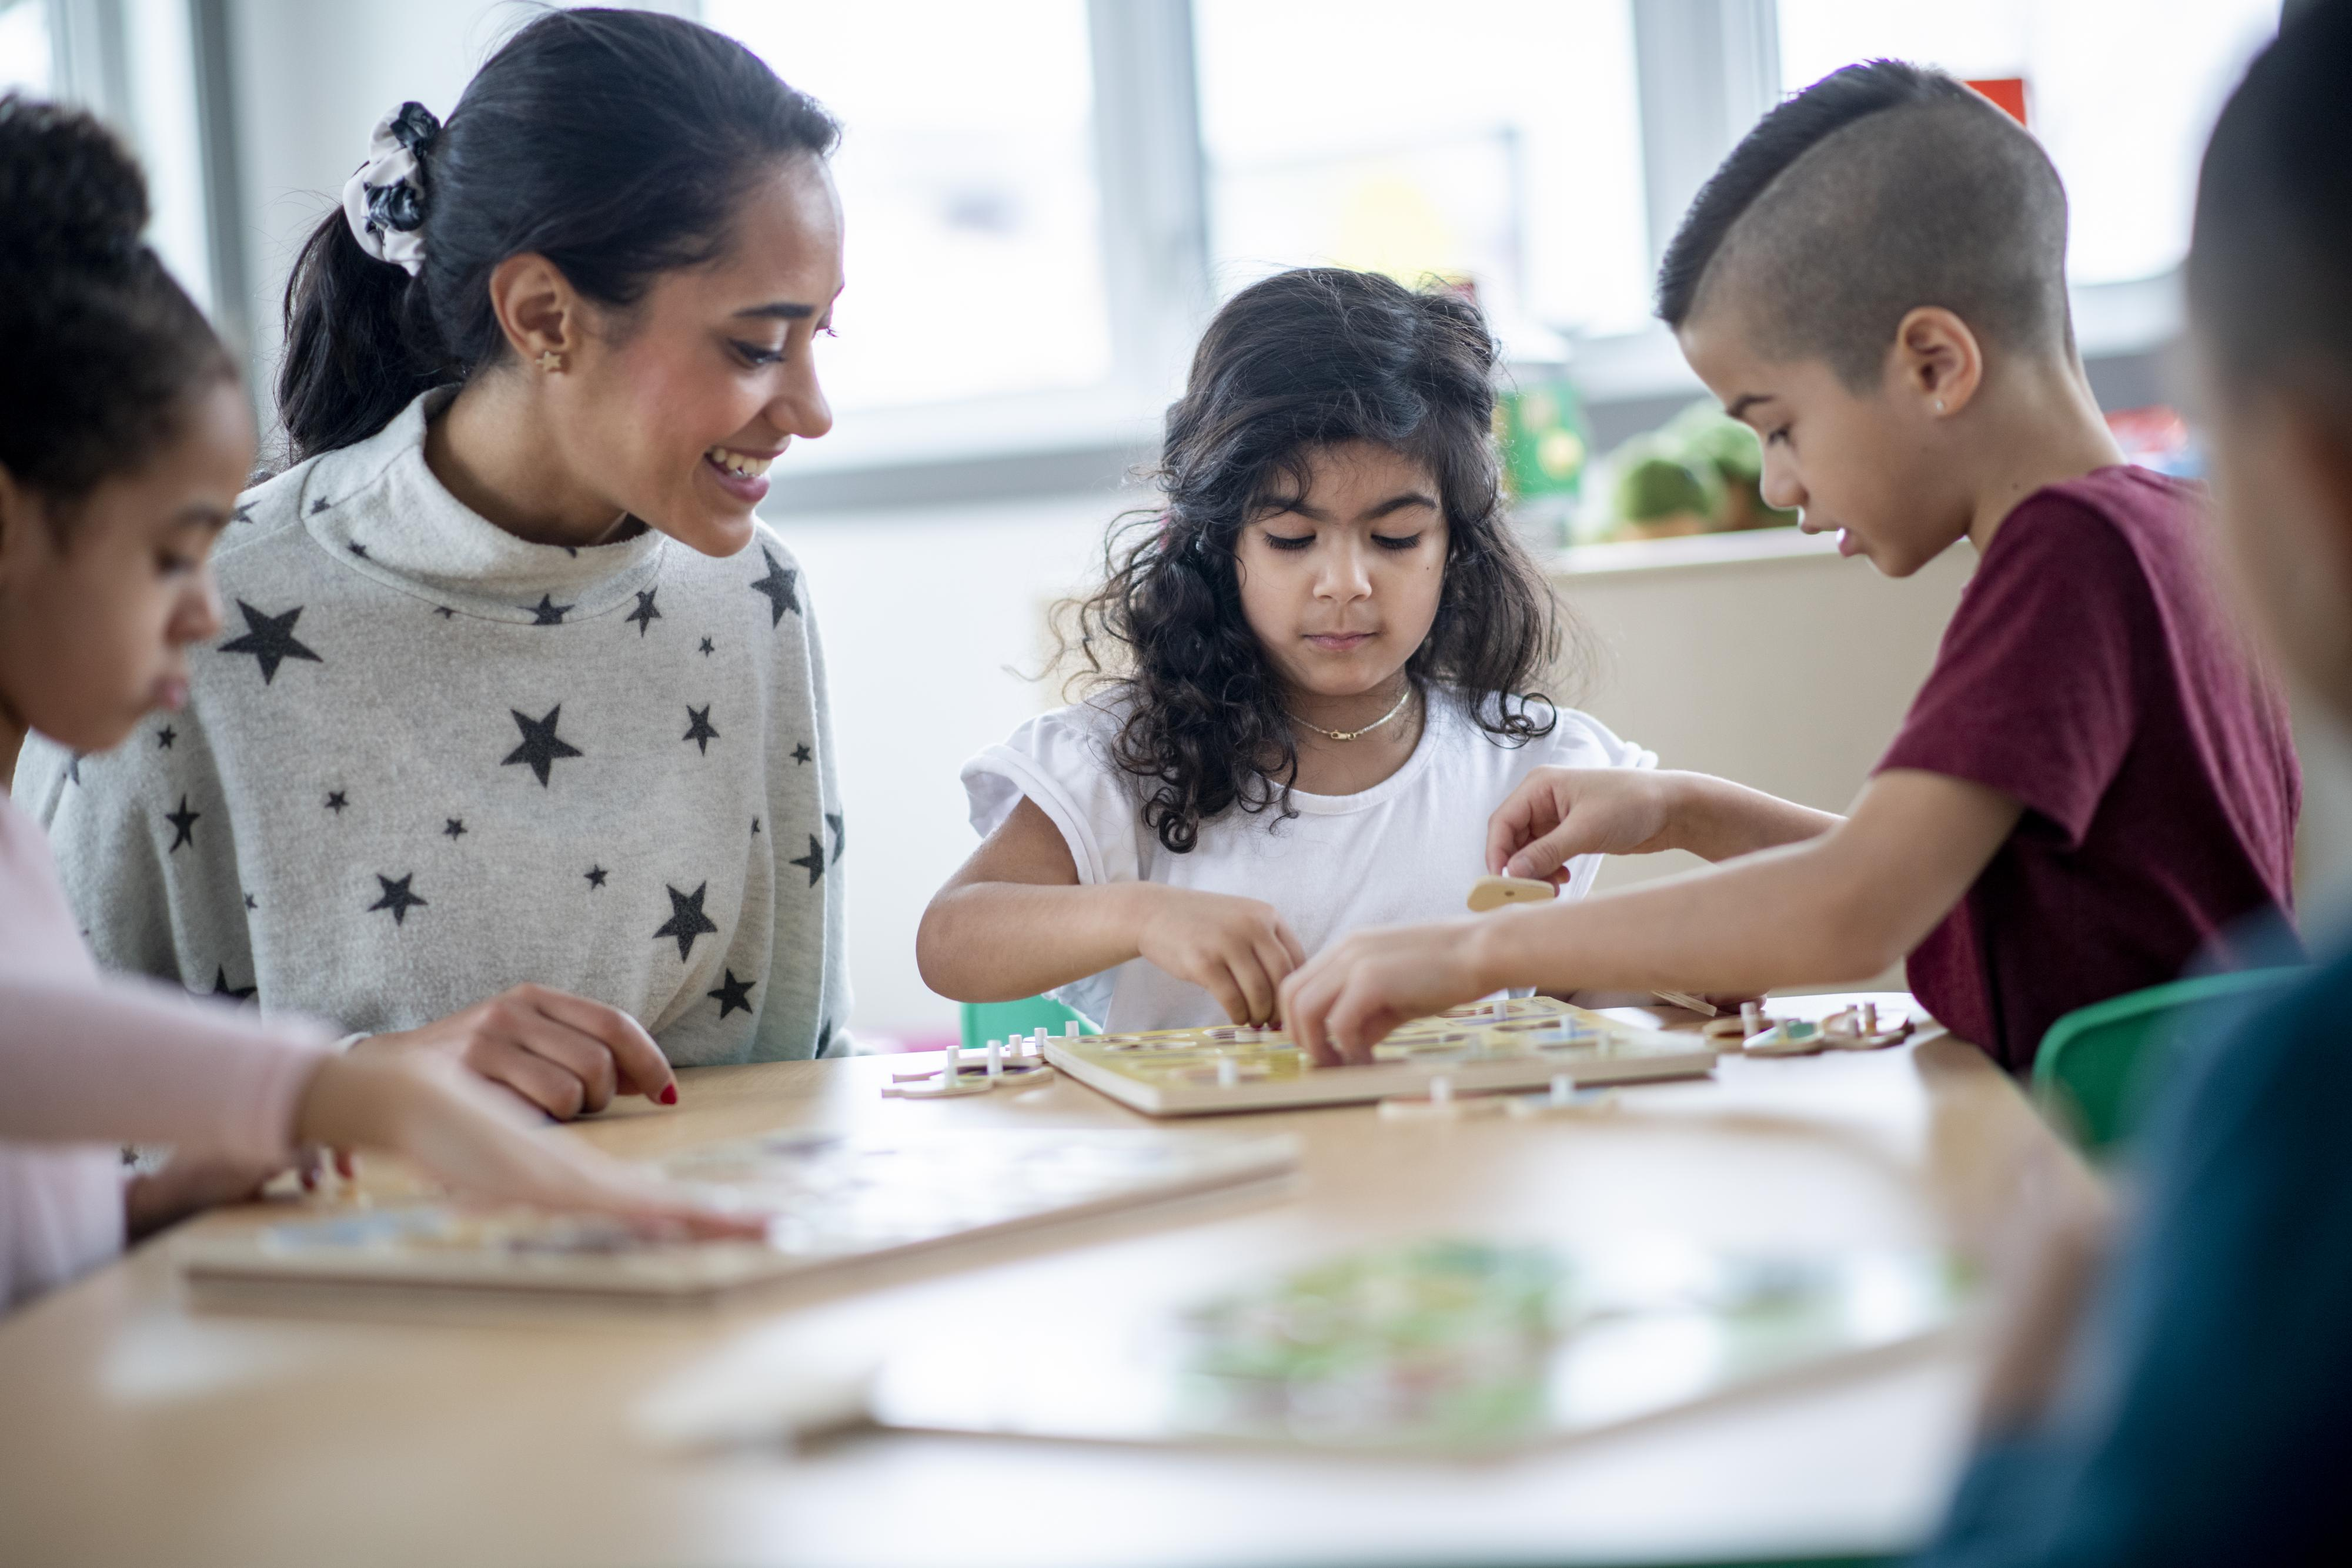 A teacher observes children cooperating with a puzzle.